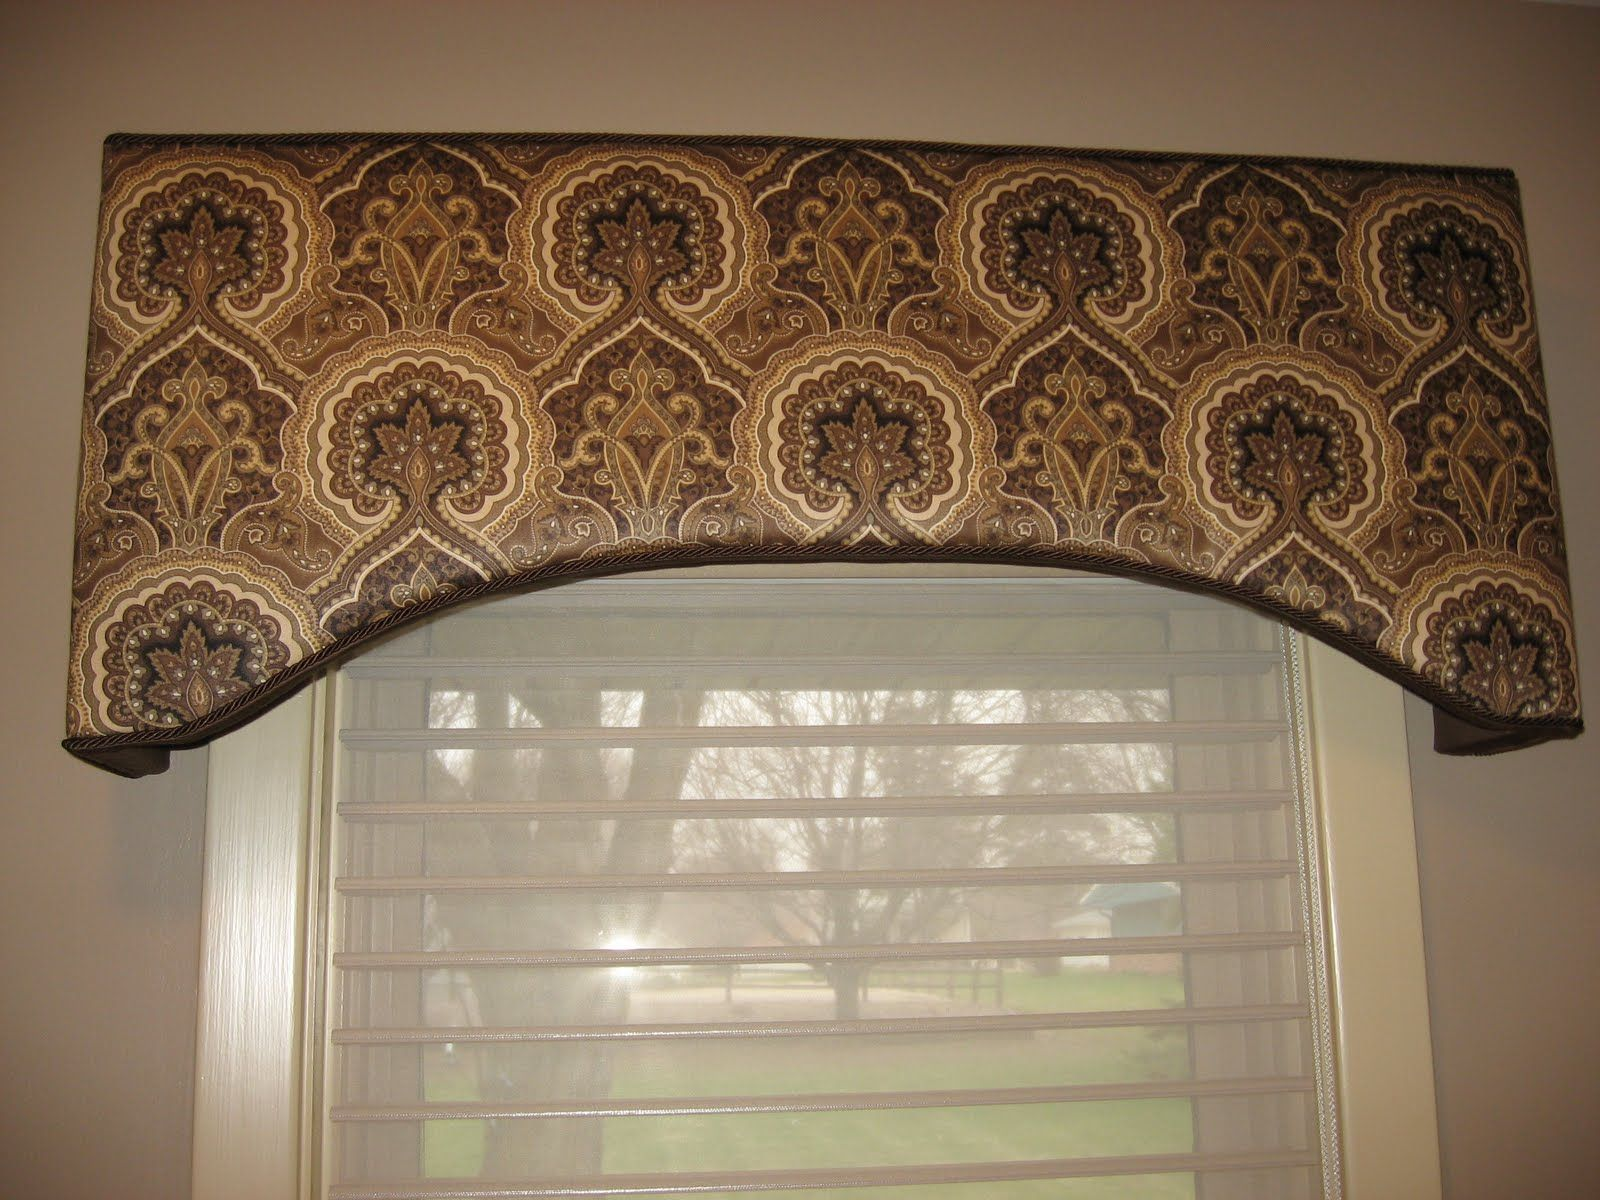 Bathroom valance ideas - Cornice Boards For Windows Wee Meenit To Cornice Or Not To Cornice